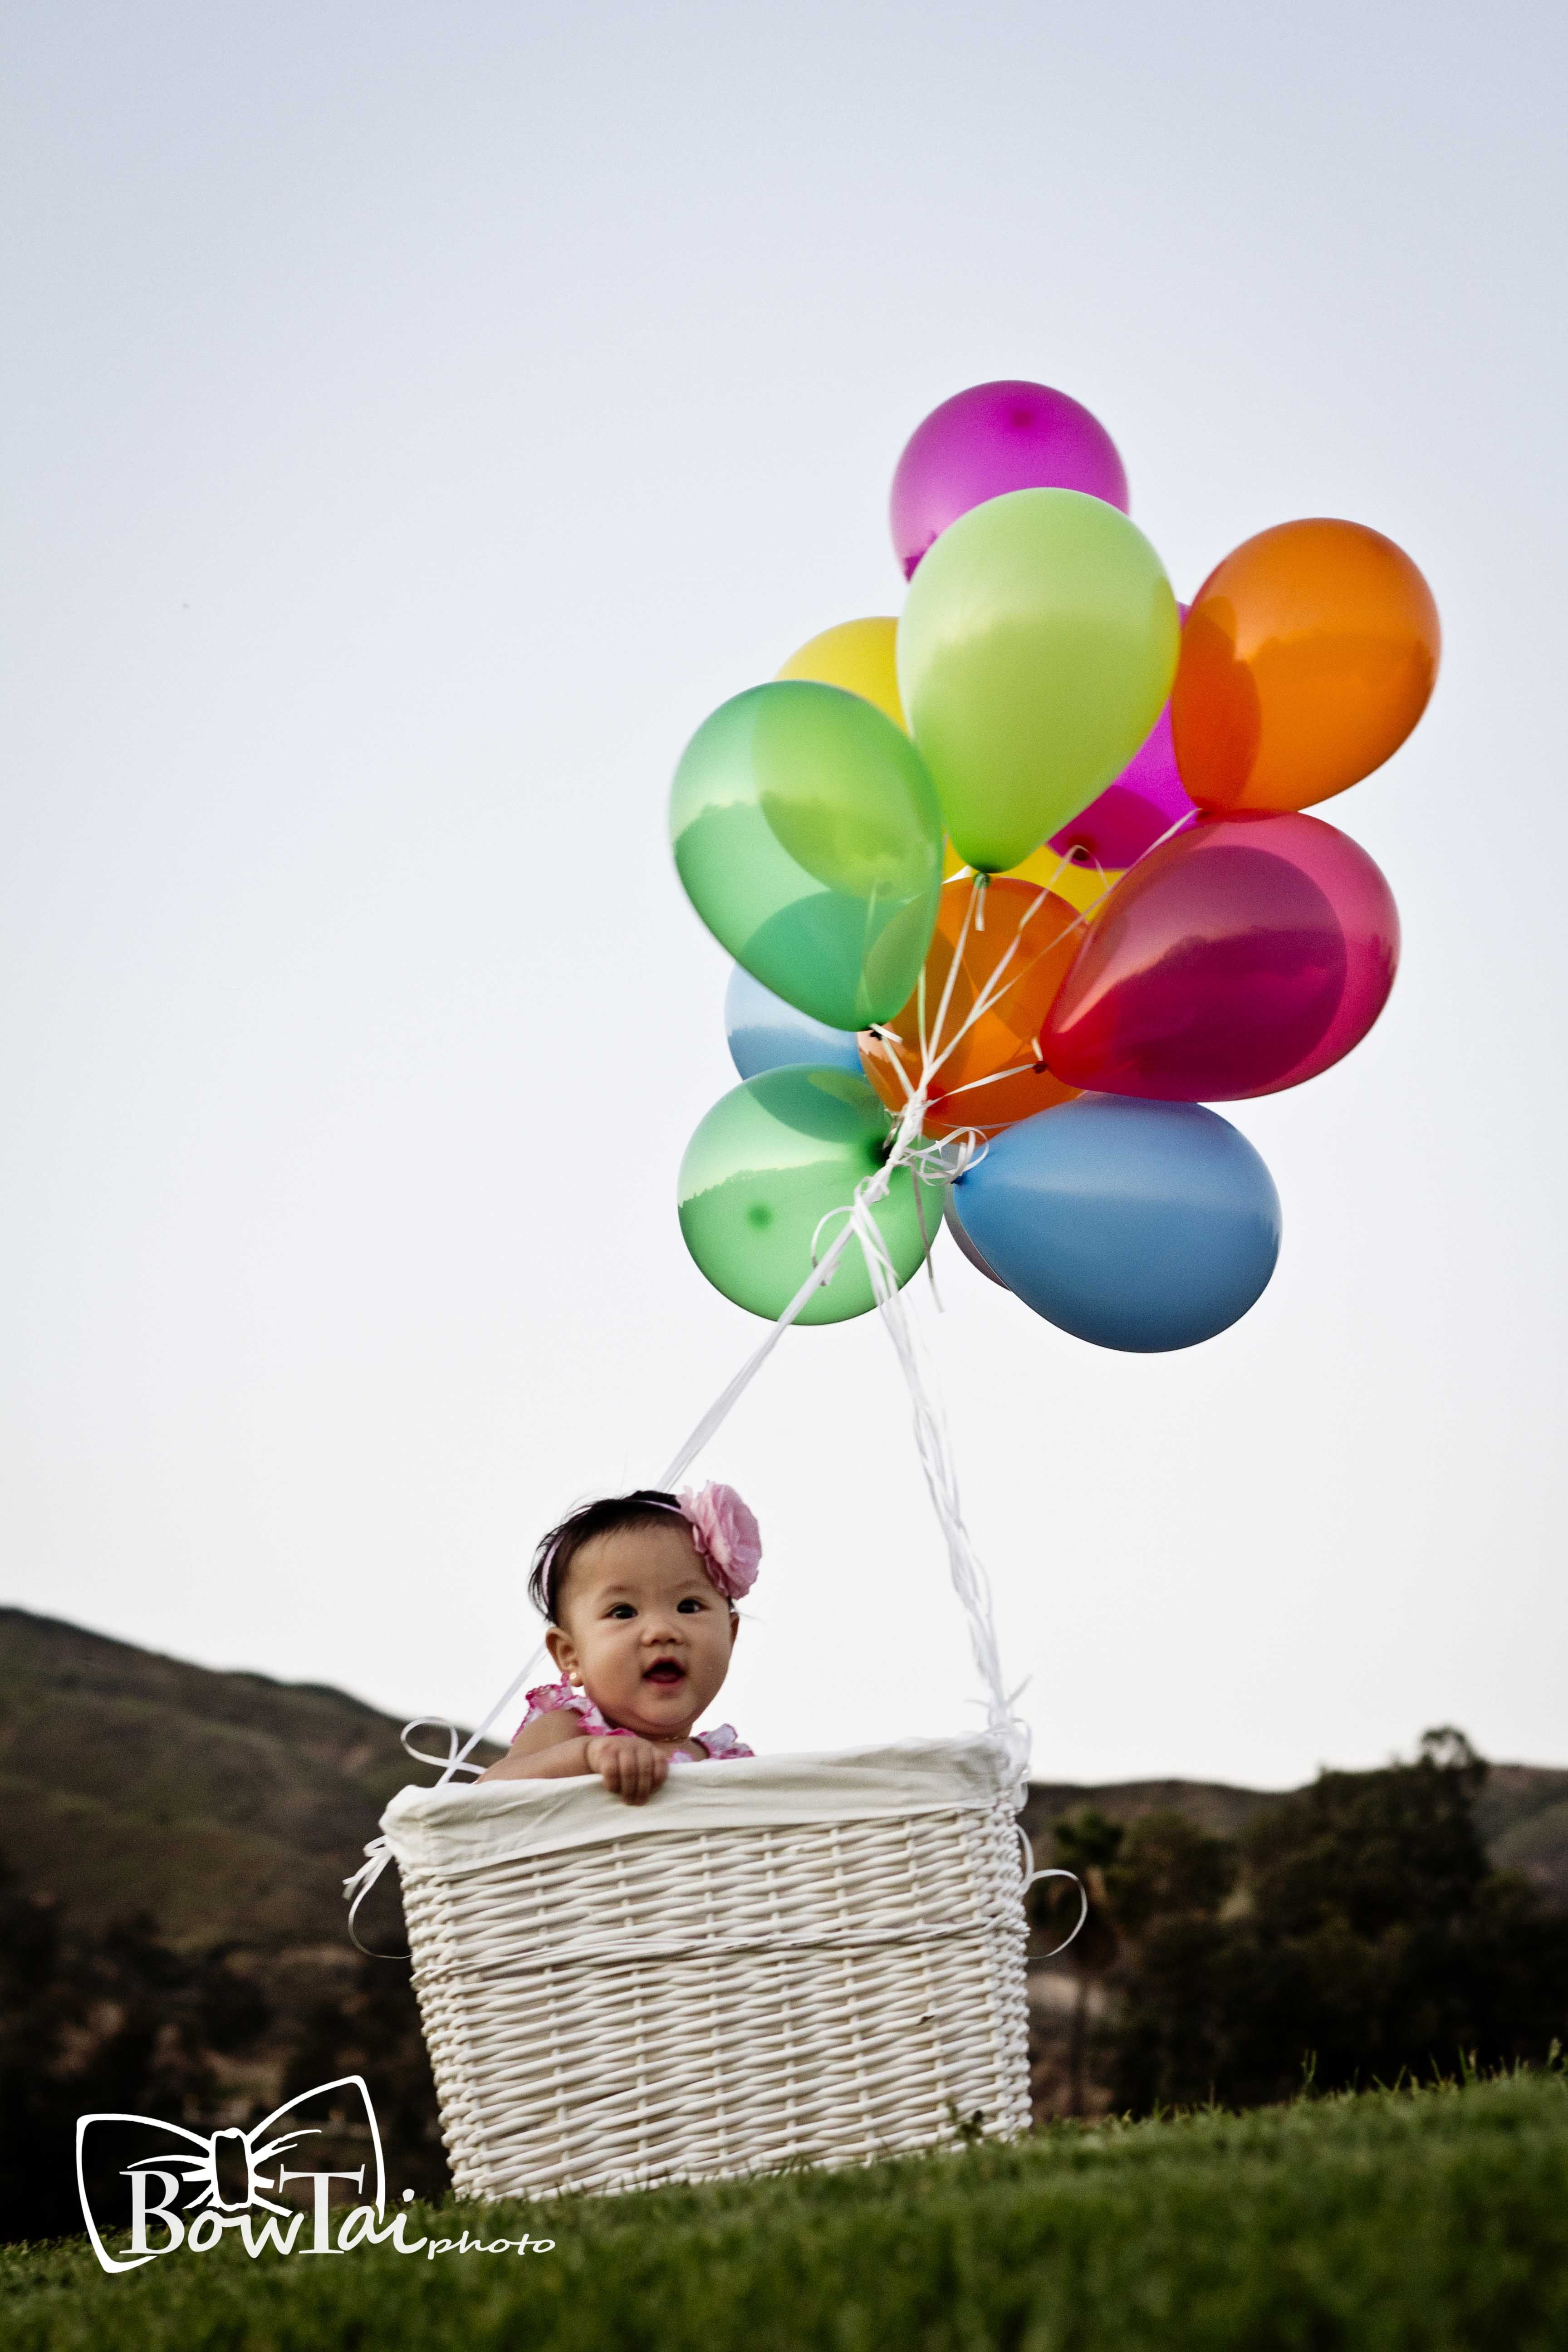 Cute Babies Playing With Ballon Photography